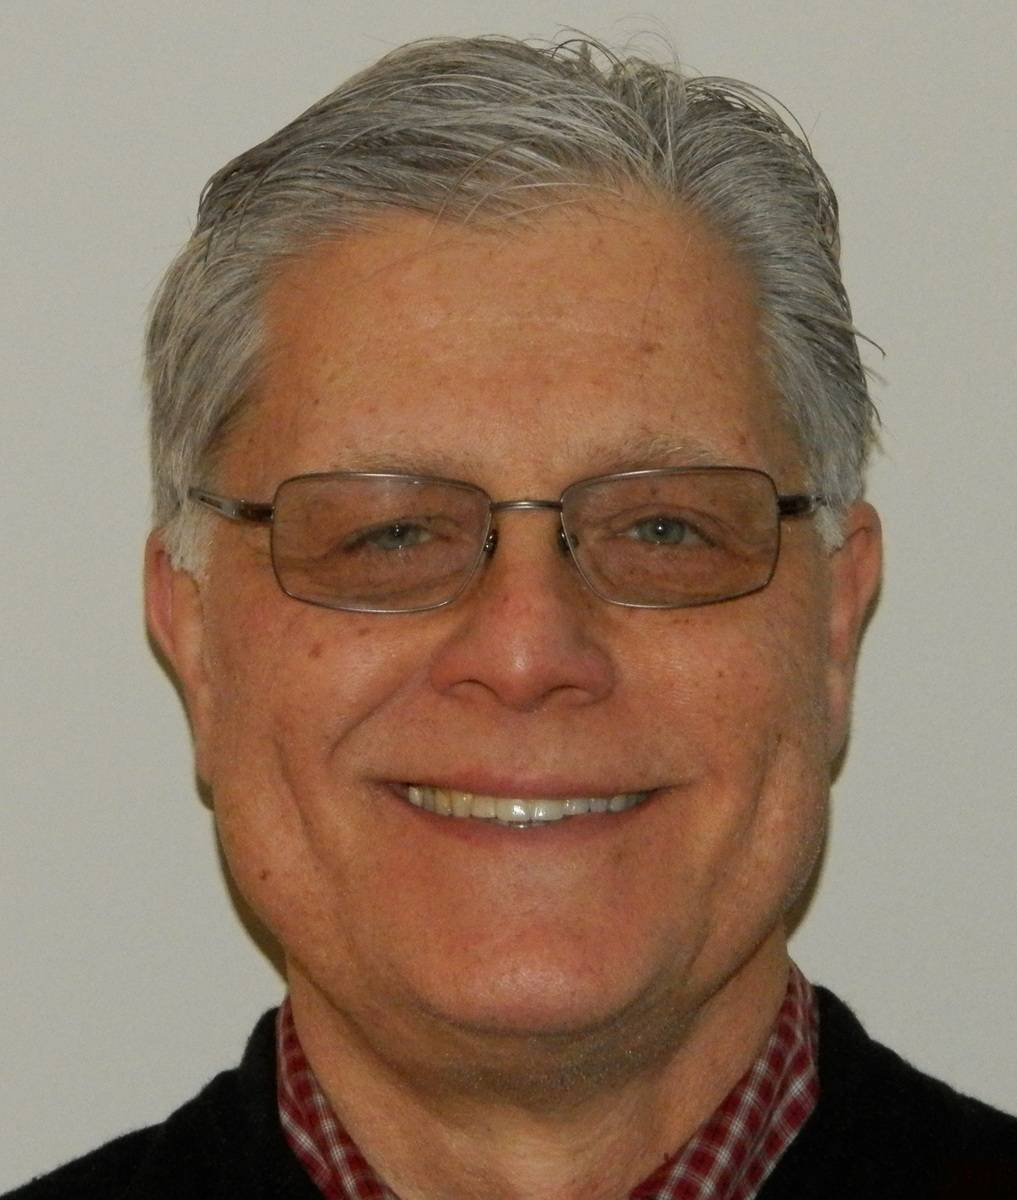 Len Prejna, running for Rolling Meadows City Council Ward 2 (4-year Term)